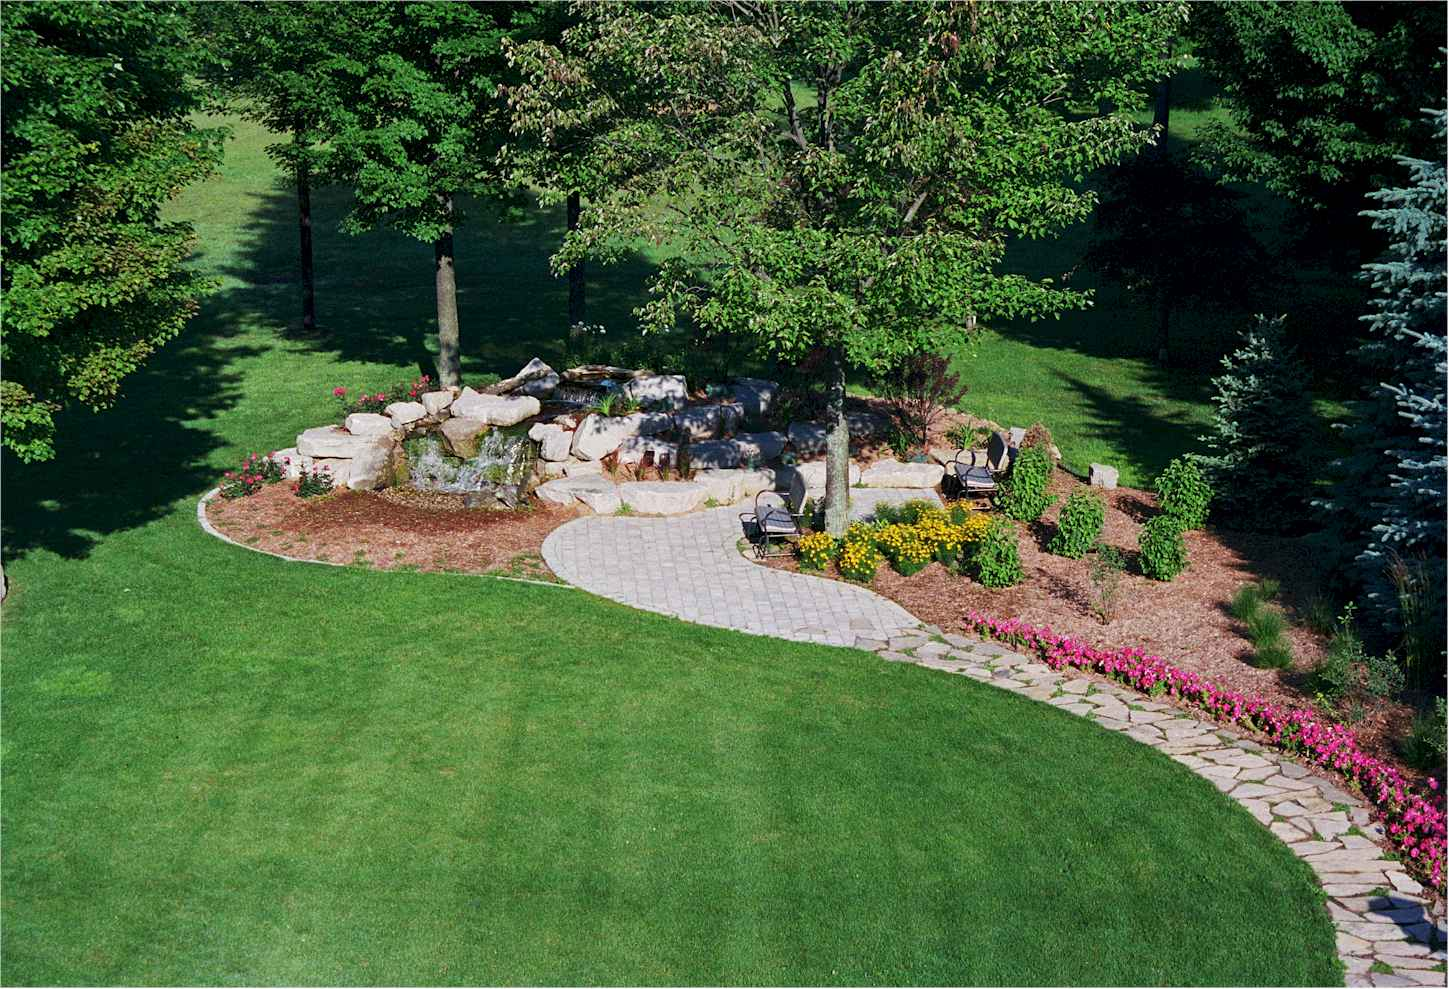 5 landscaping ideas to wow the neighbors for Landscaping tips